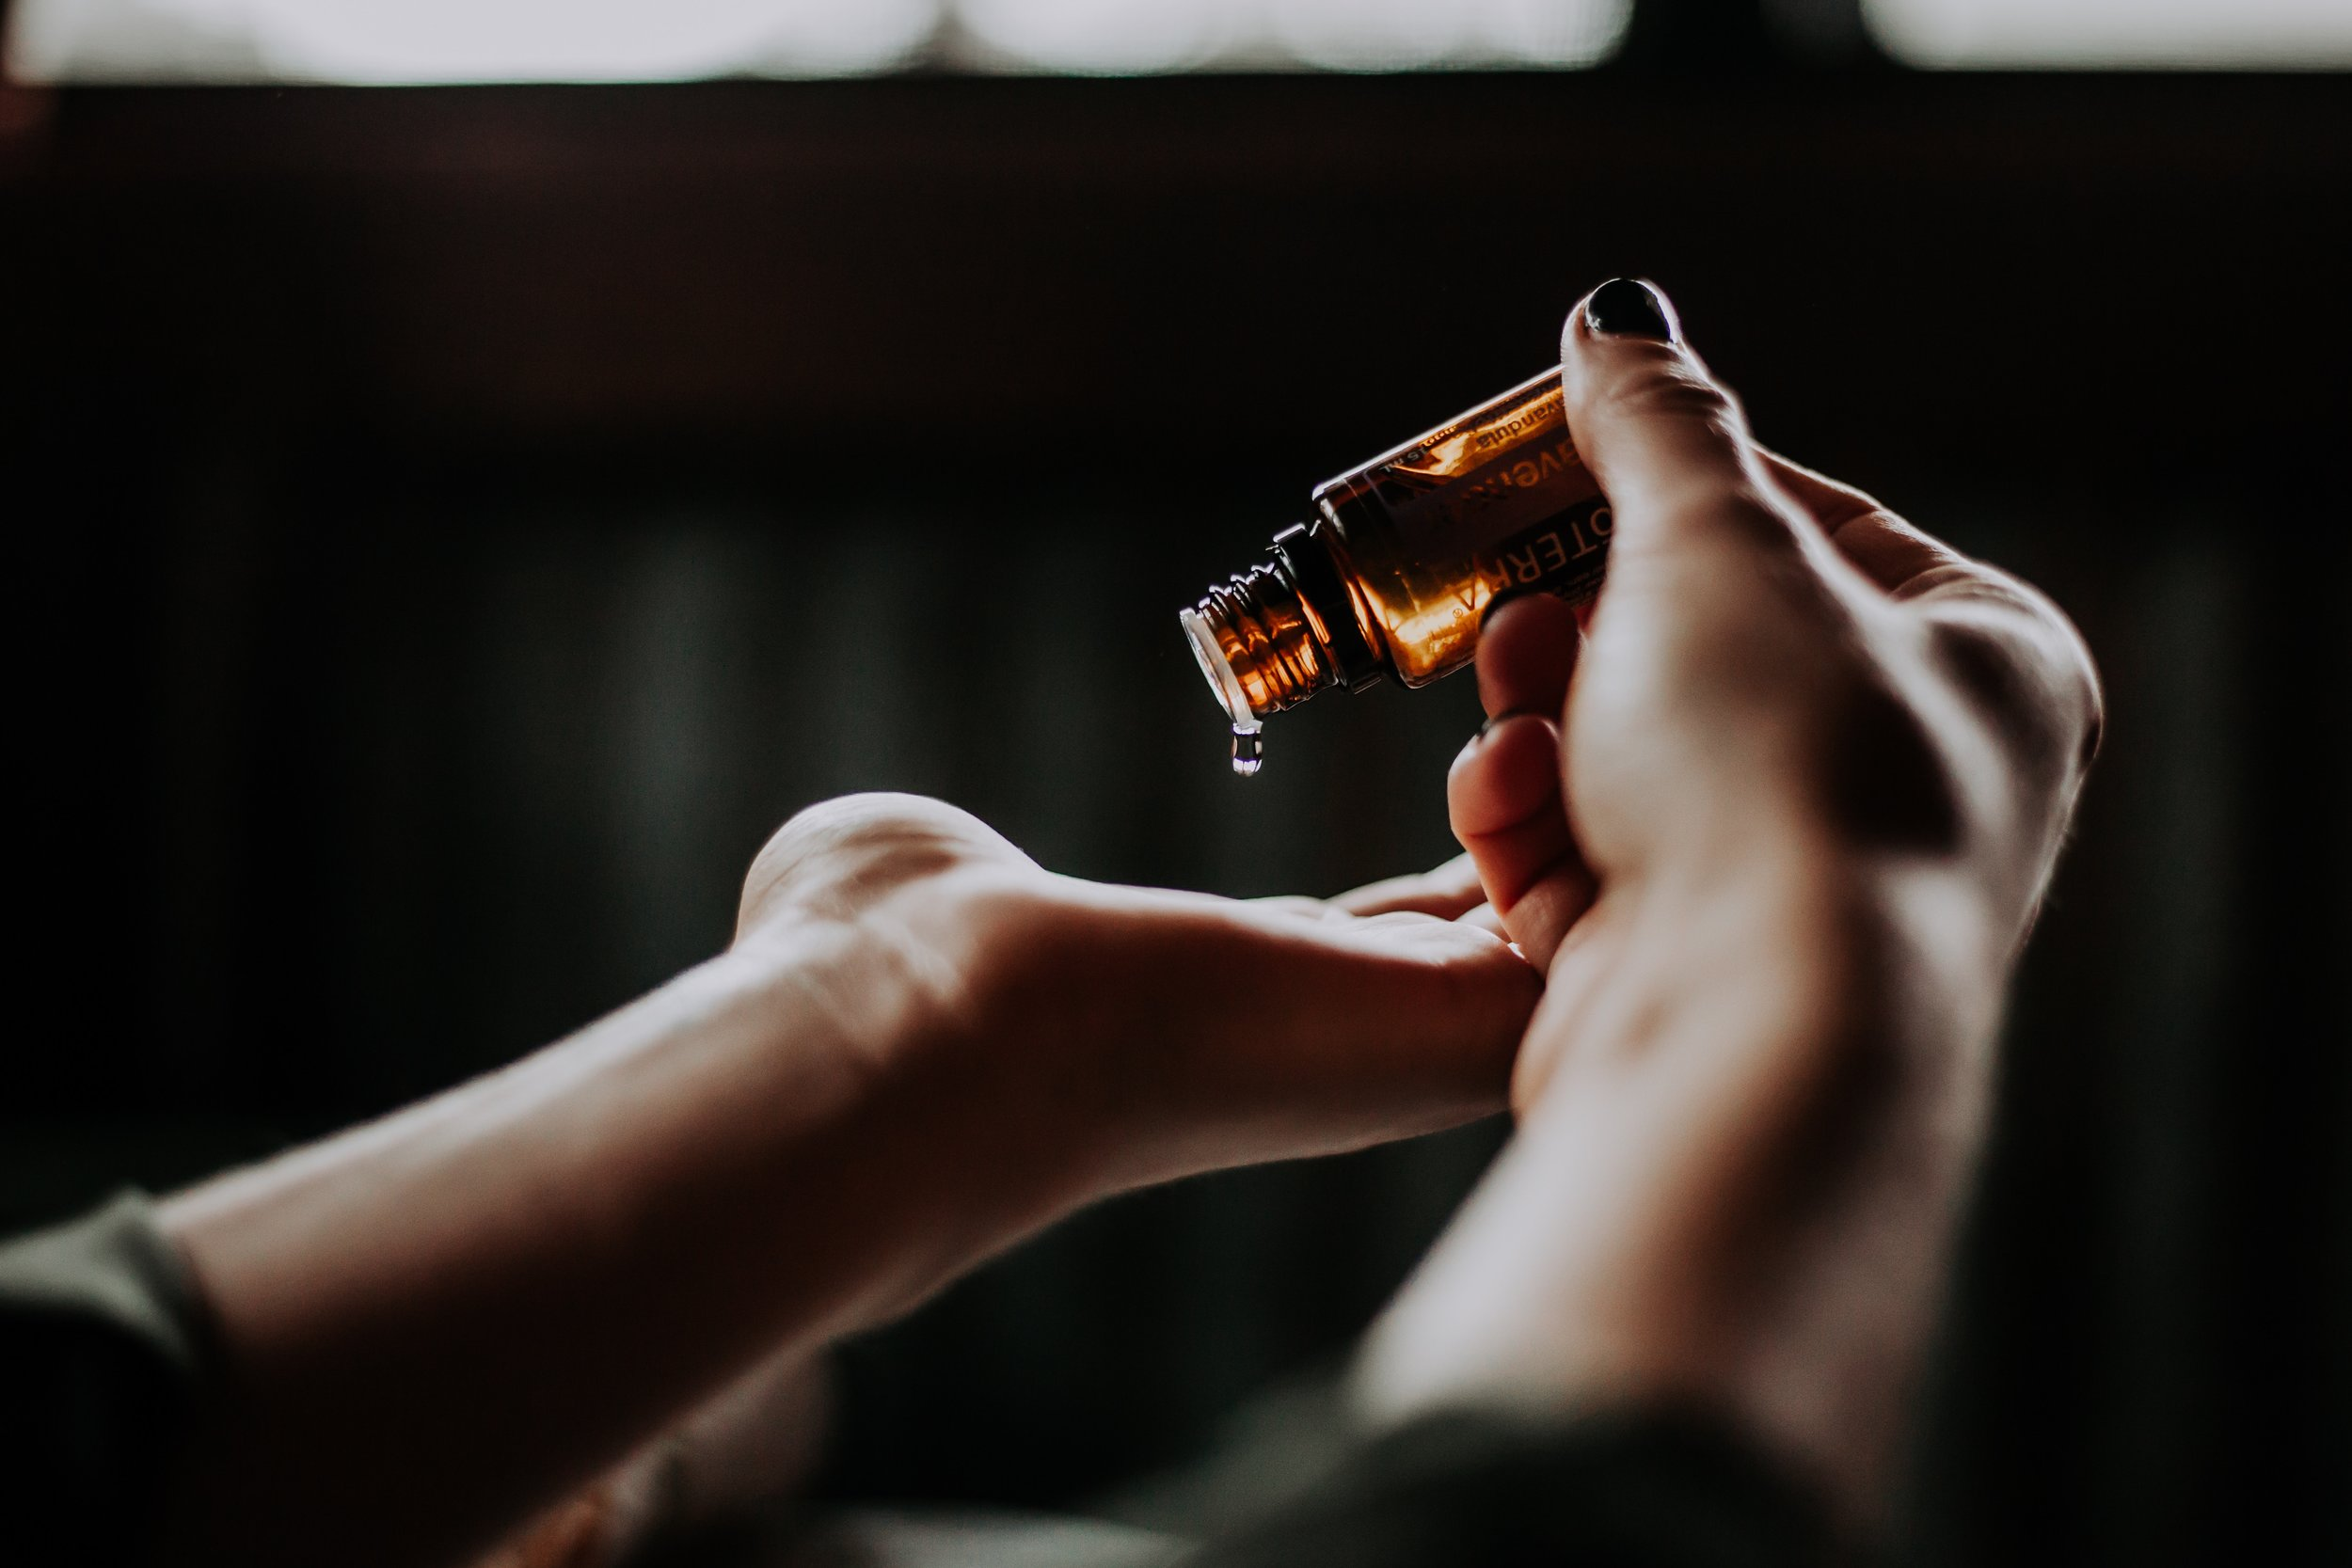 Consciously Connected Travel - CCT Journal - 5 must have essential oils | How to use them throughout your day - women only retreat - aromatherapy oils for travel - travel oils - women's healing retreats - women's wellness retreats - women's spiritual retreat